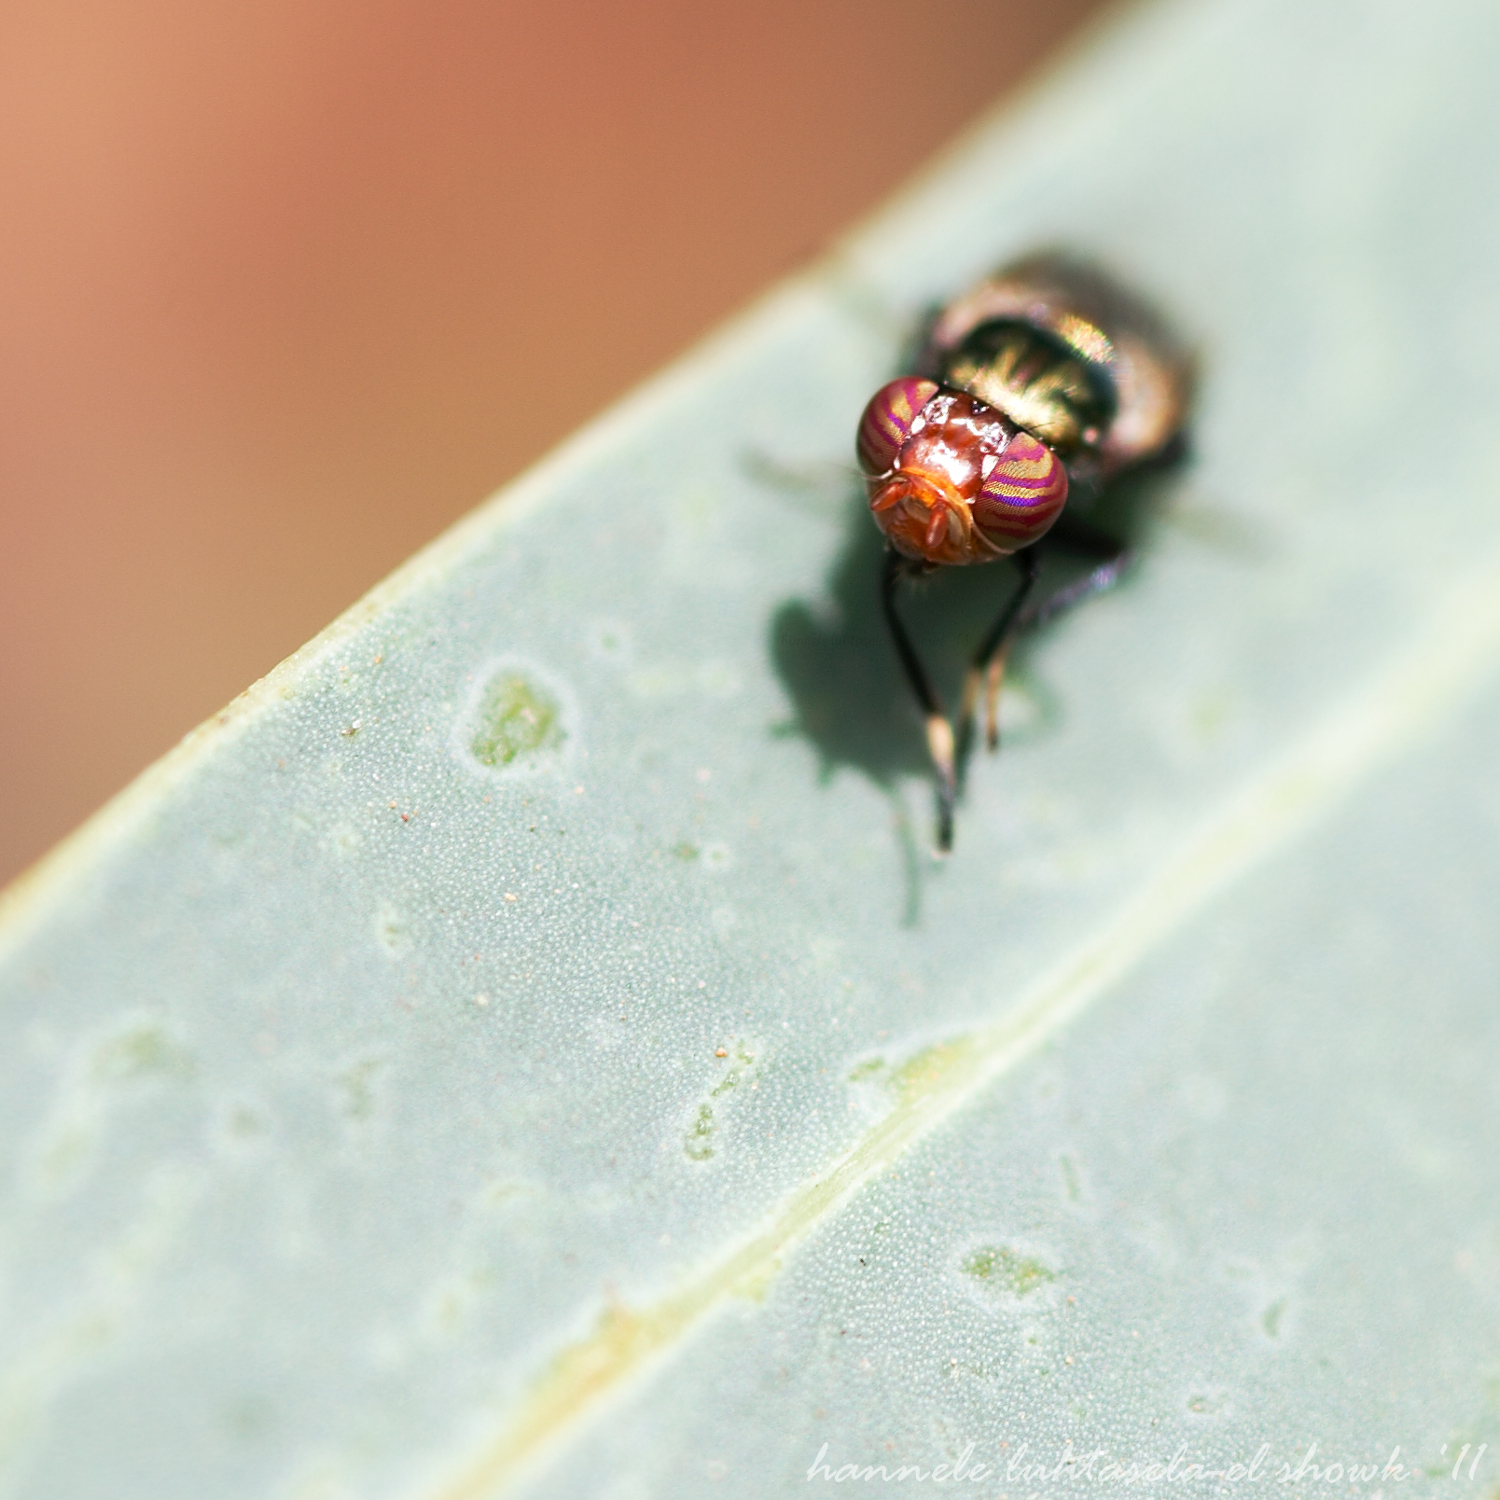 Fly with stripey eyes. Insect Photography Tips